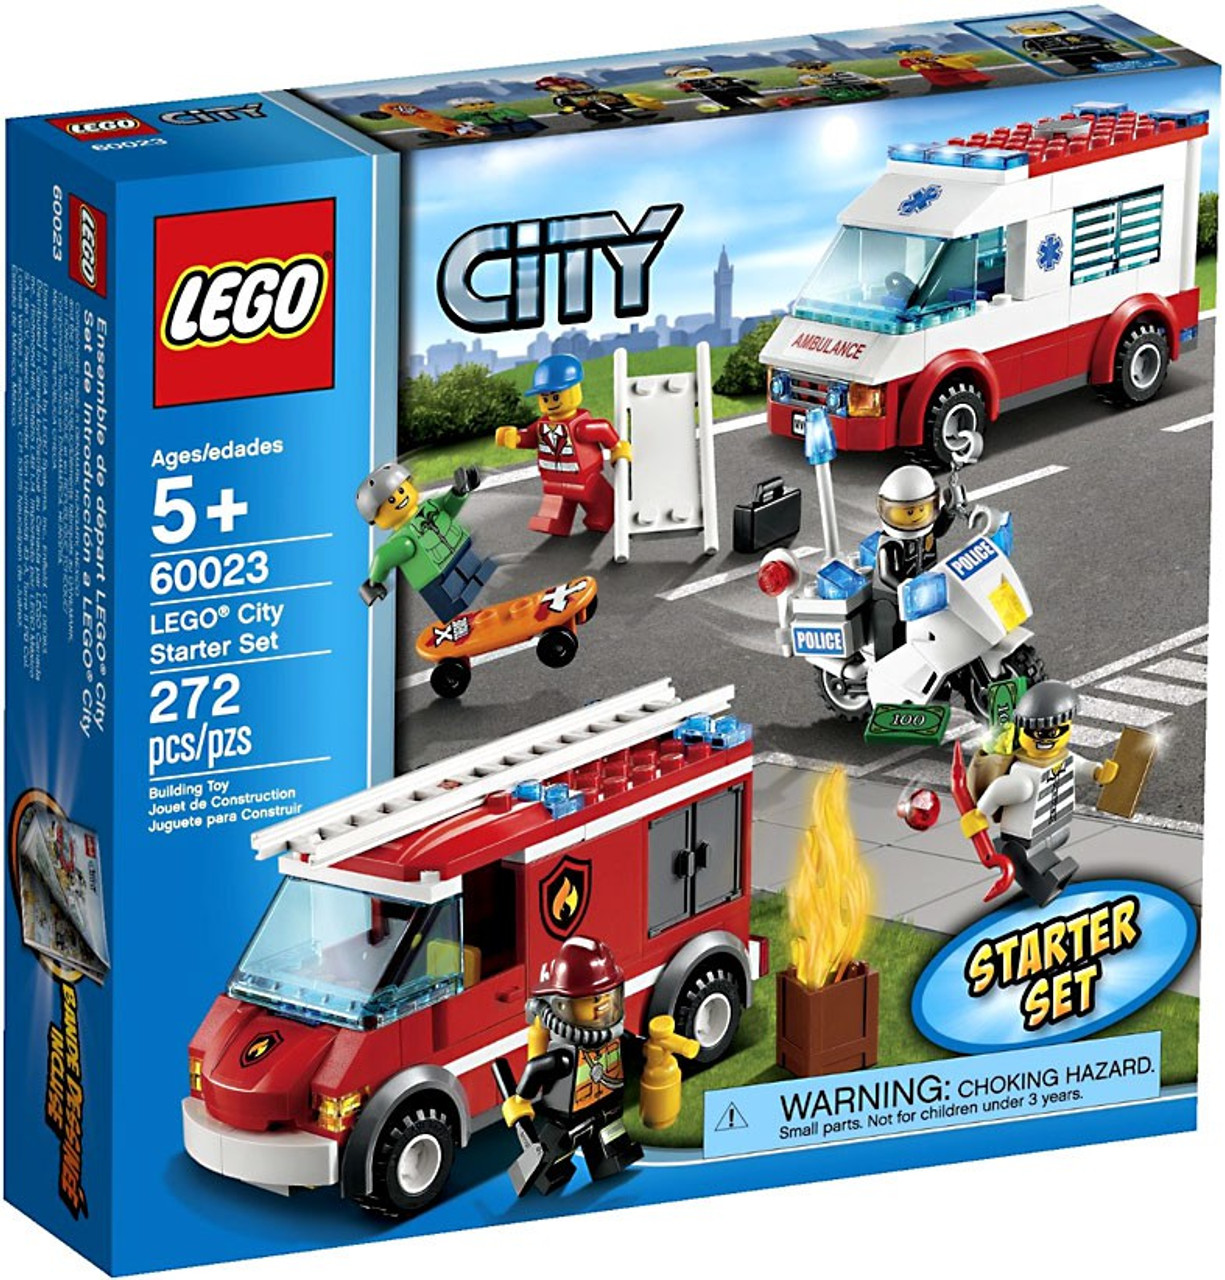 LEGO City Starter Set Set #60023